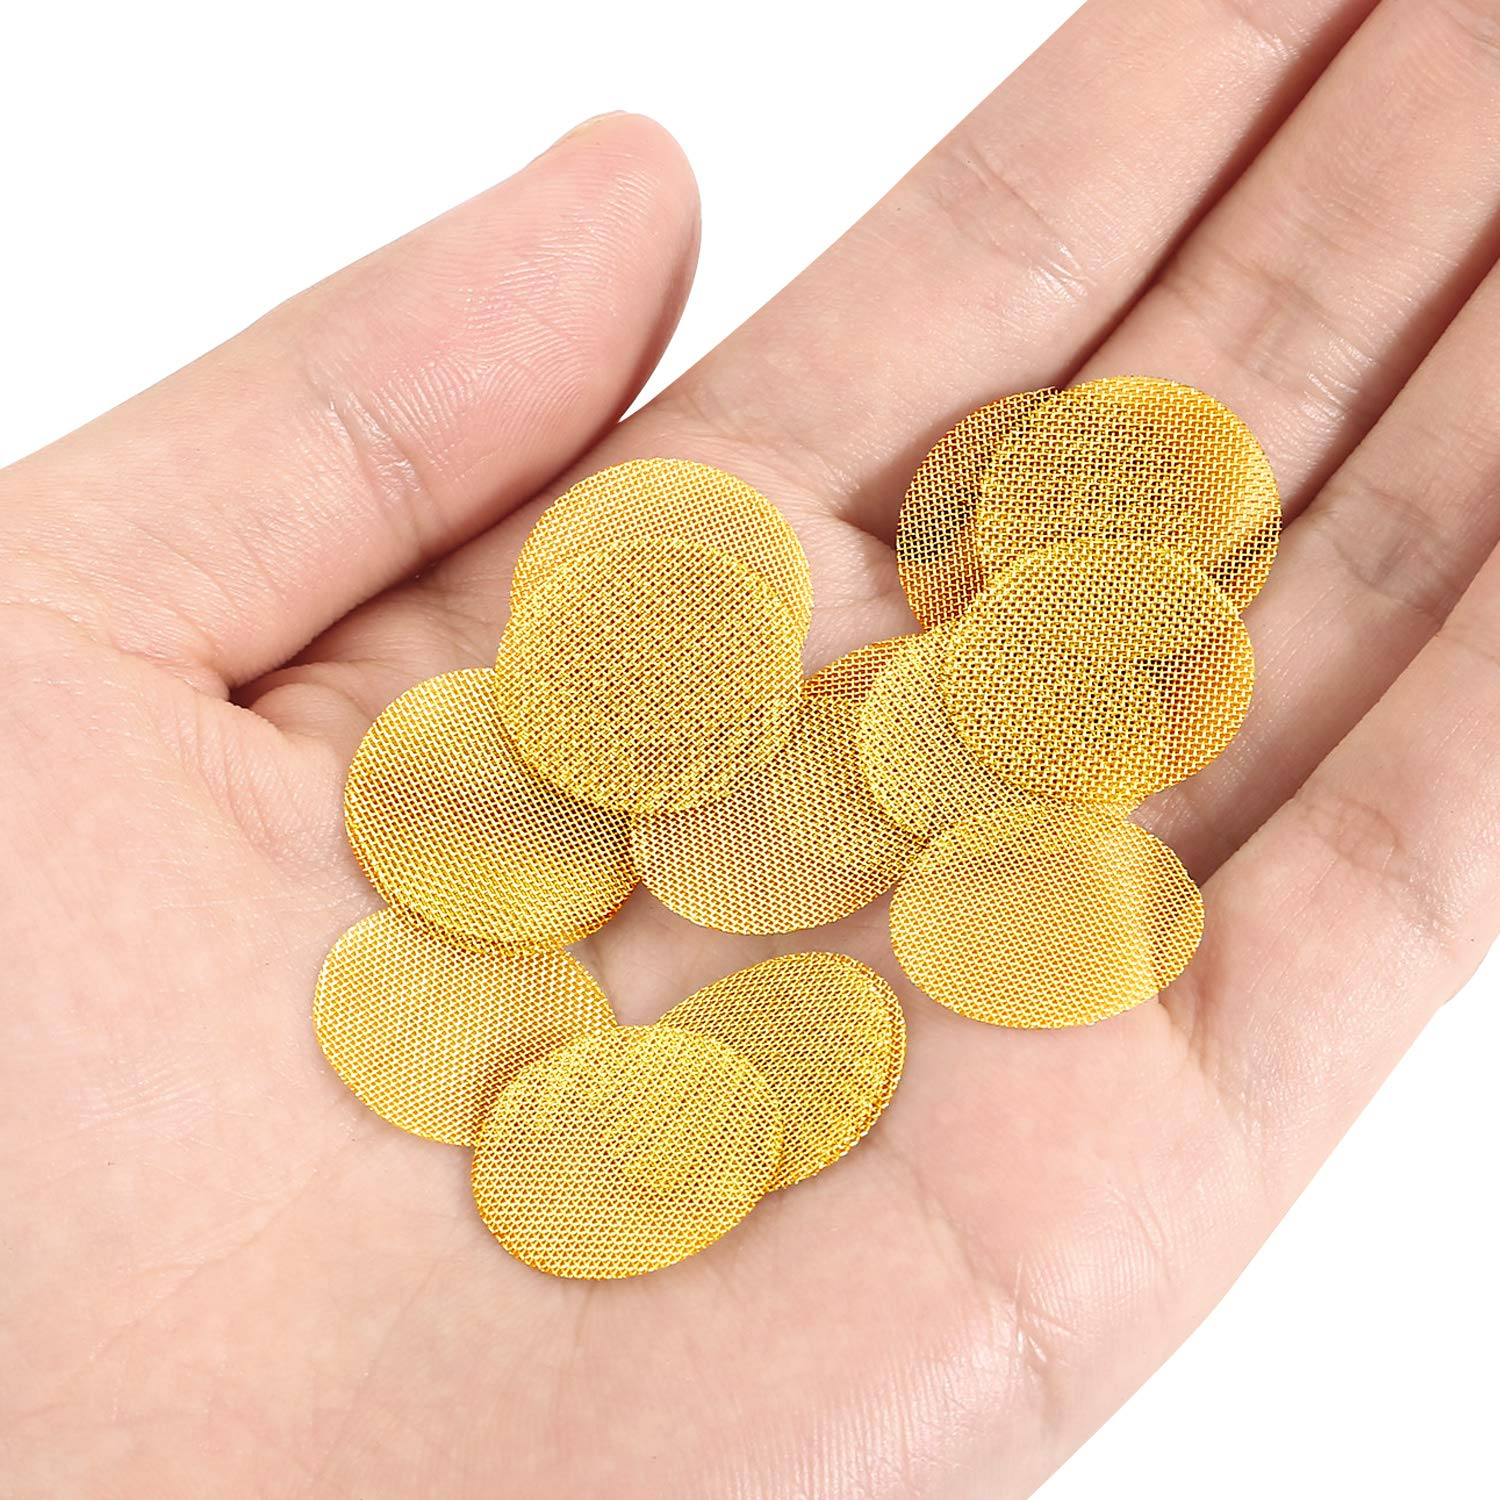 150 Pieces Pipe Screen Filters Premium Brass Pipe Screens for Bowls Smoking NEW